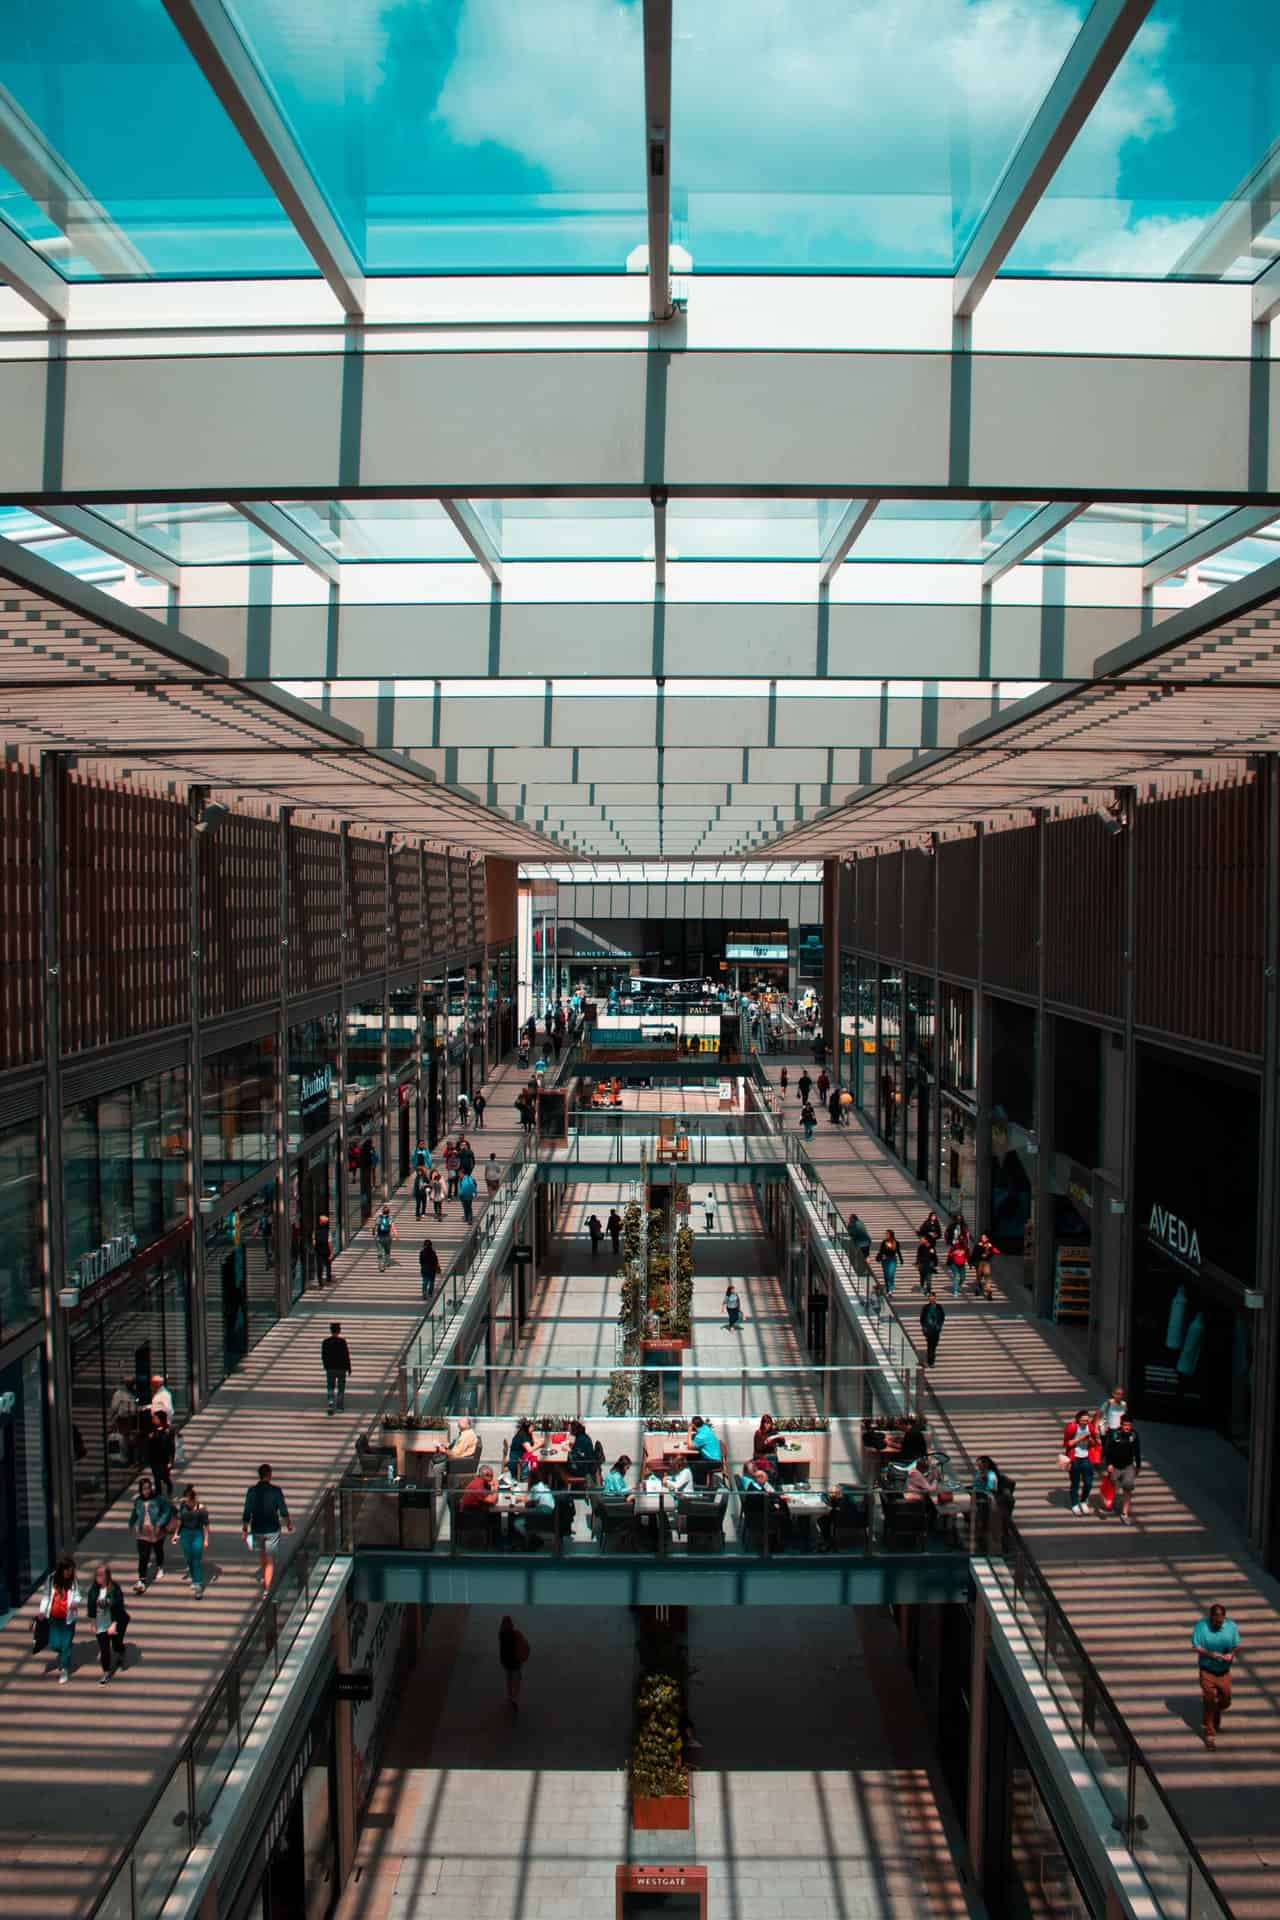 How You Can Improve Retail Security for Malls with Retail Security Software